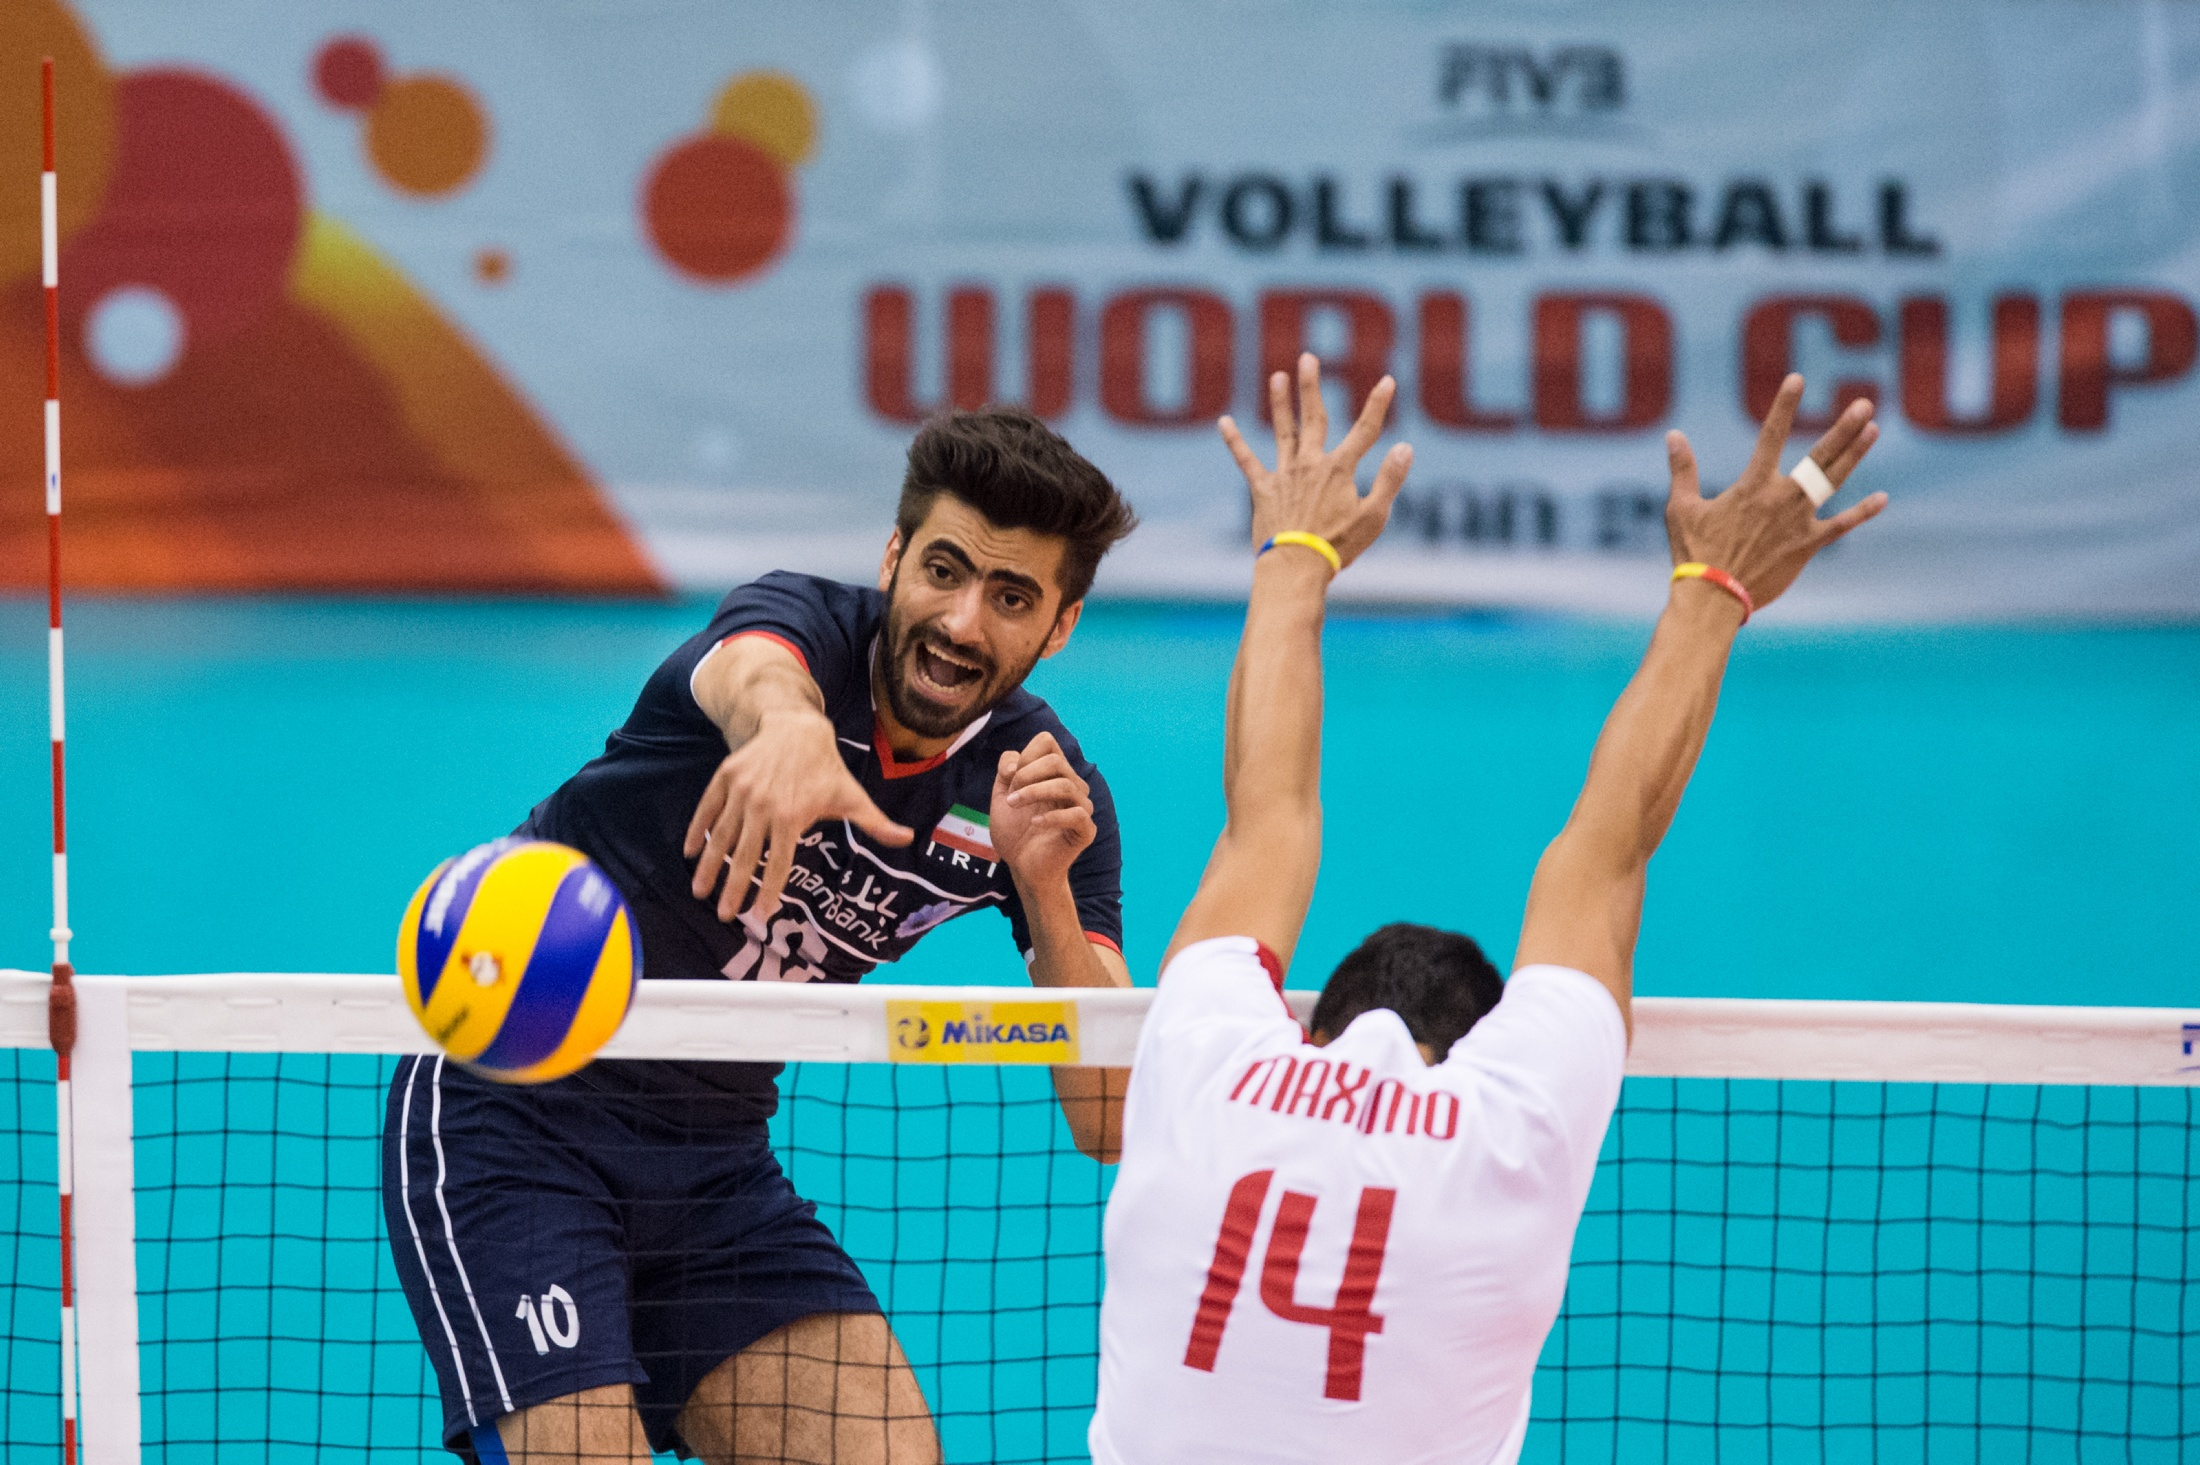 http://www.fivb.org/Vis2009/Images/GetImage.asmx?No=201516985&width=900&height=600&stretch=uniform